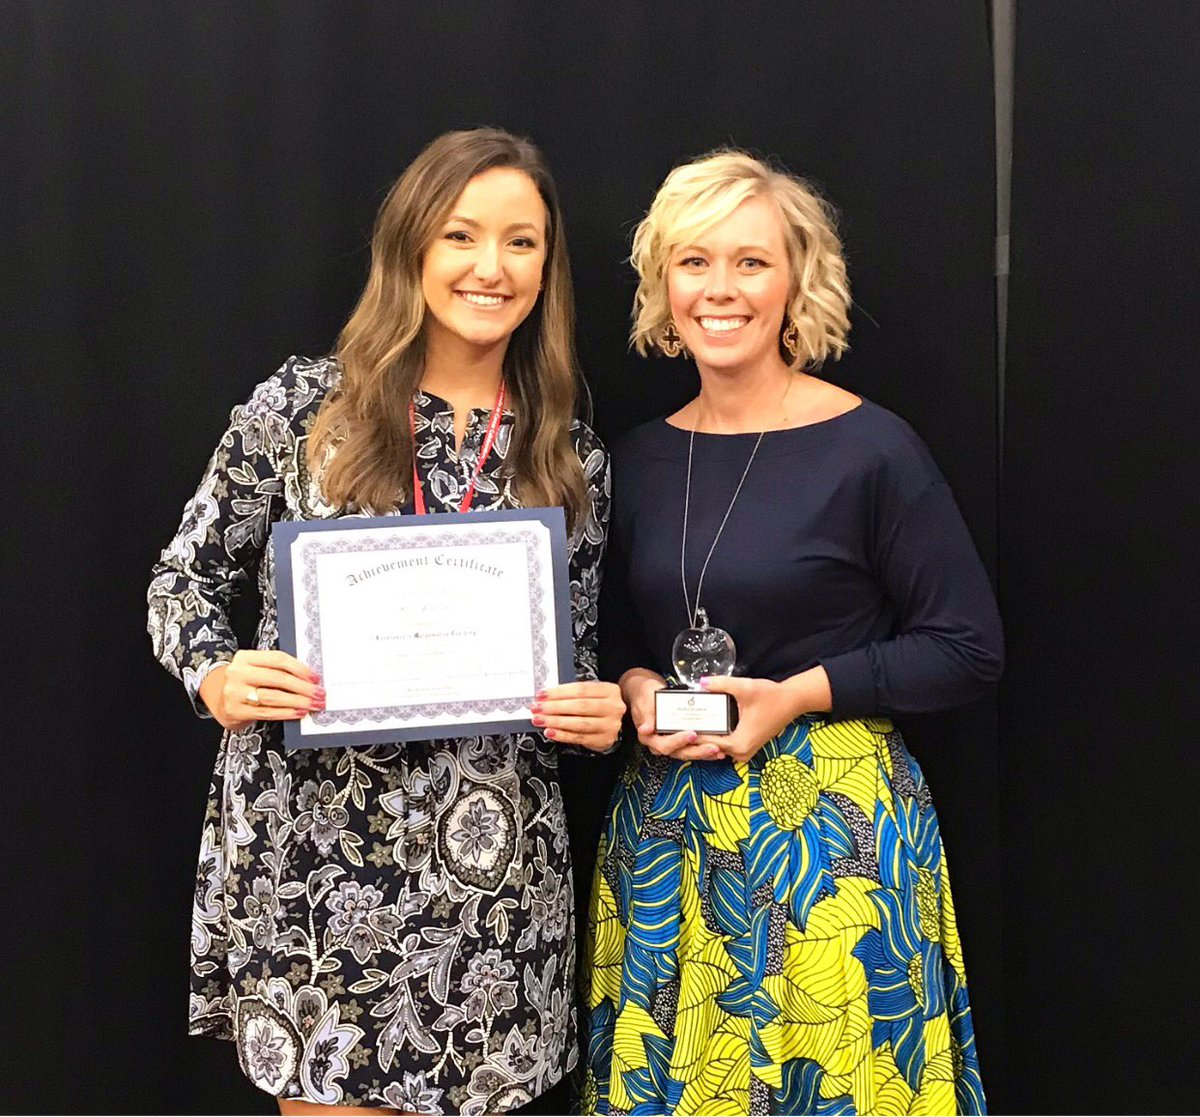 test Twitter Media - Ms. Brewster and Mrs. Ball were recognized as nominees for the Excellence in Mathematics teaching award last night at CSU! Mrs. Ball was the recipient of the Professional Excellence in Mathematics award! #inspireandempower https://t.co/5kyvh5hzLc